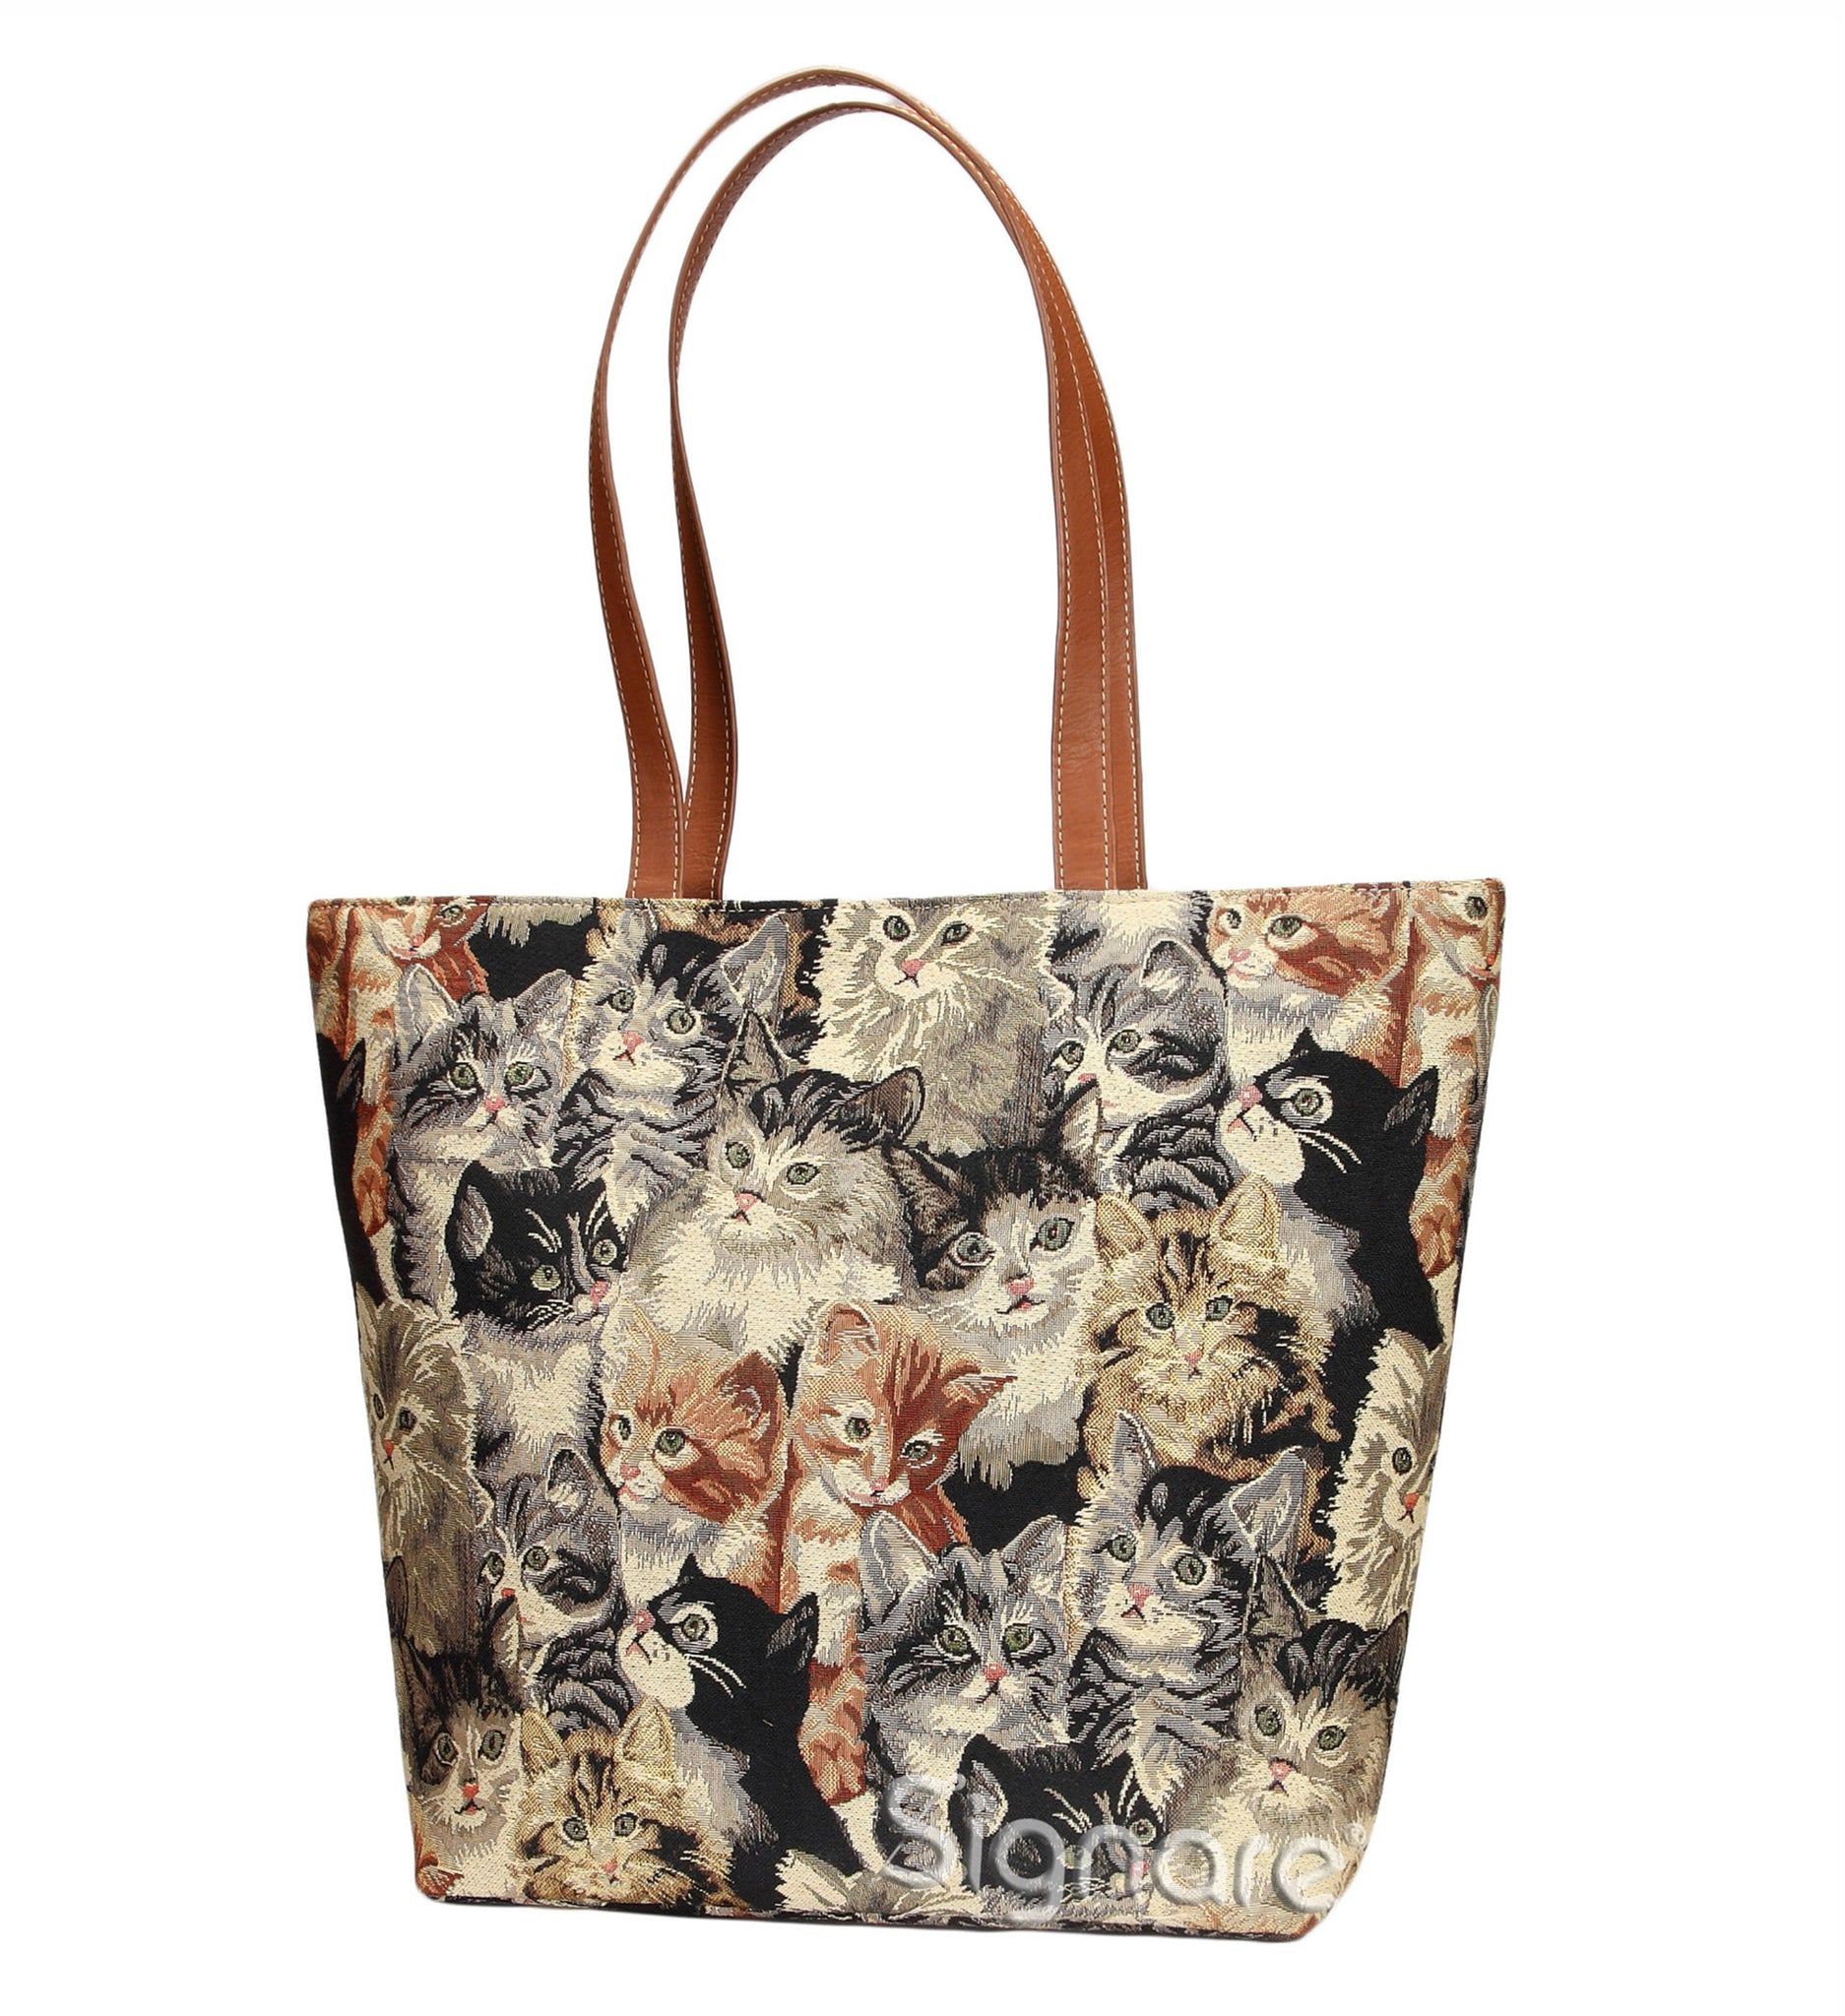 SHOU-CAT | CAT SHOULDER BAG TOTE HANDBAG - www.signareusa.com